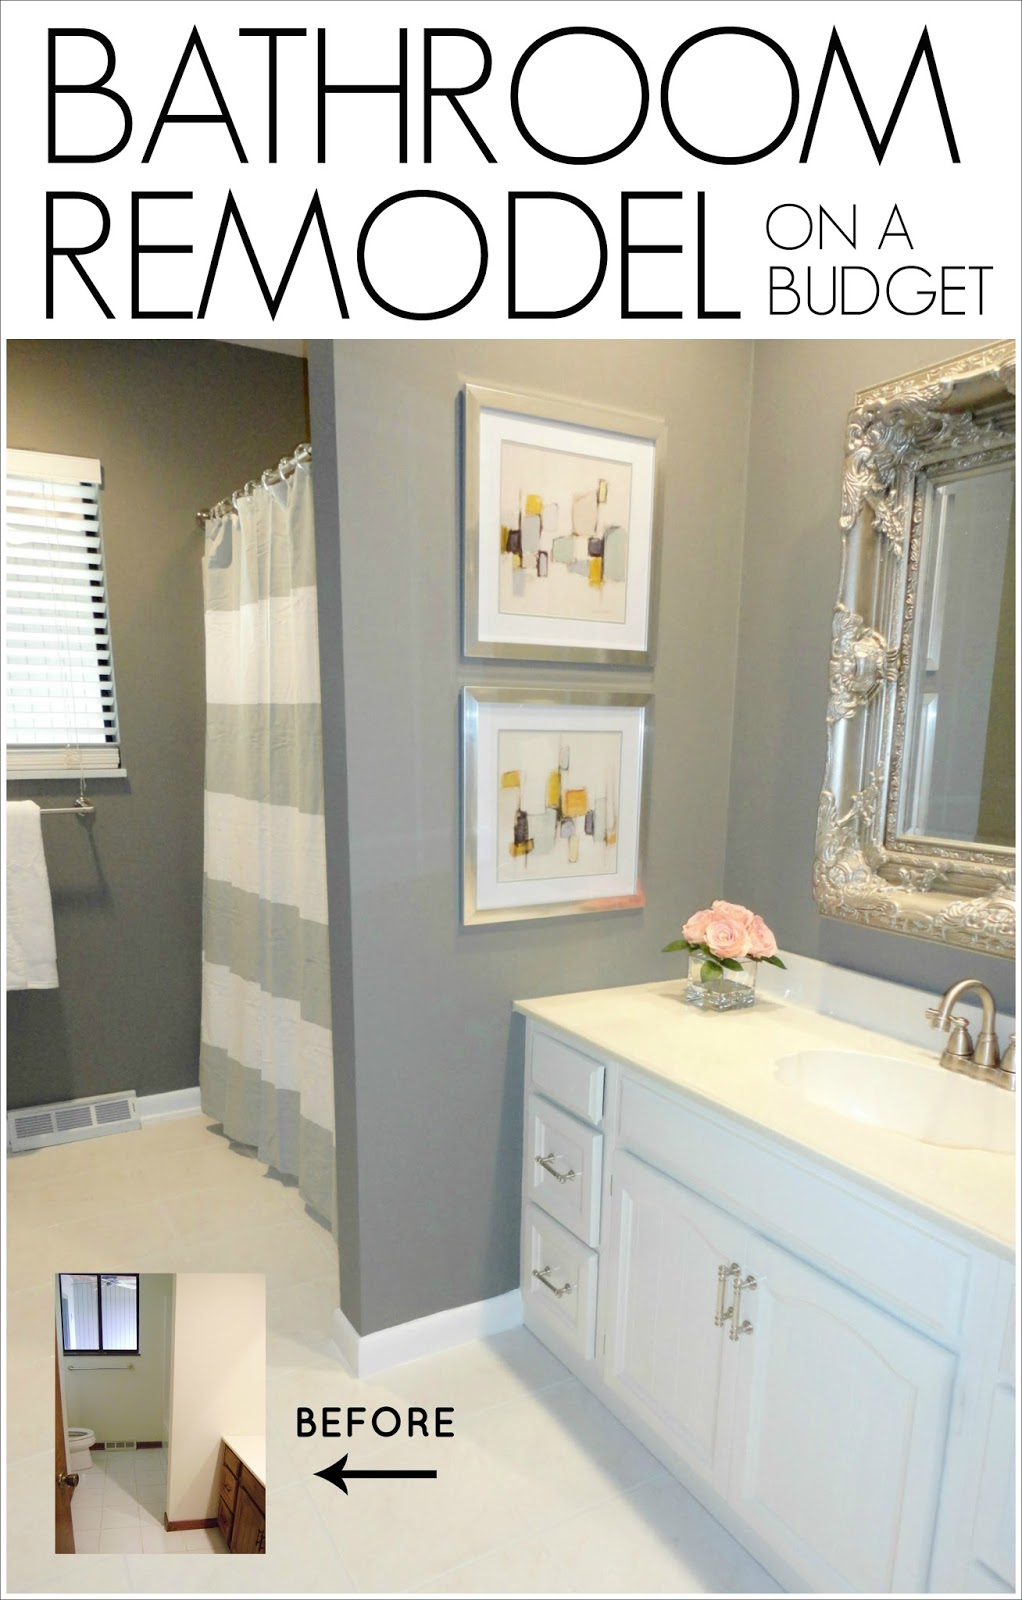 Popular DIY Bathroom Remodel on a Budget